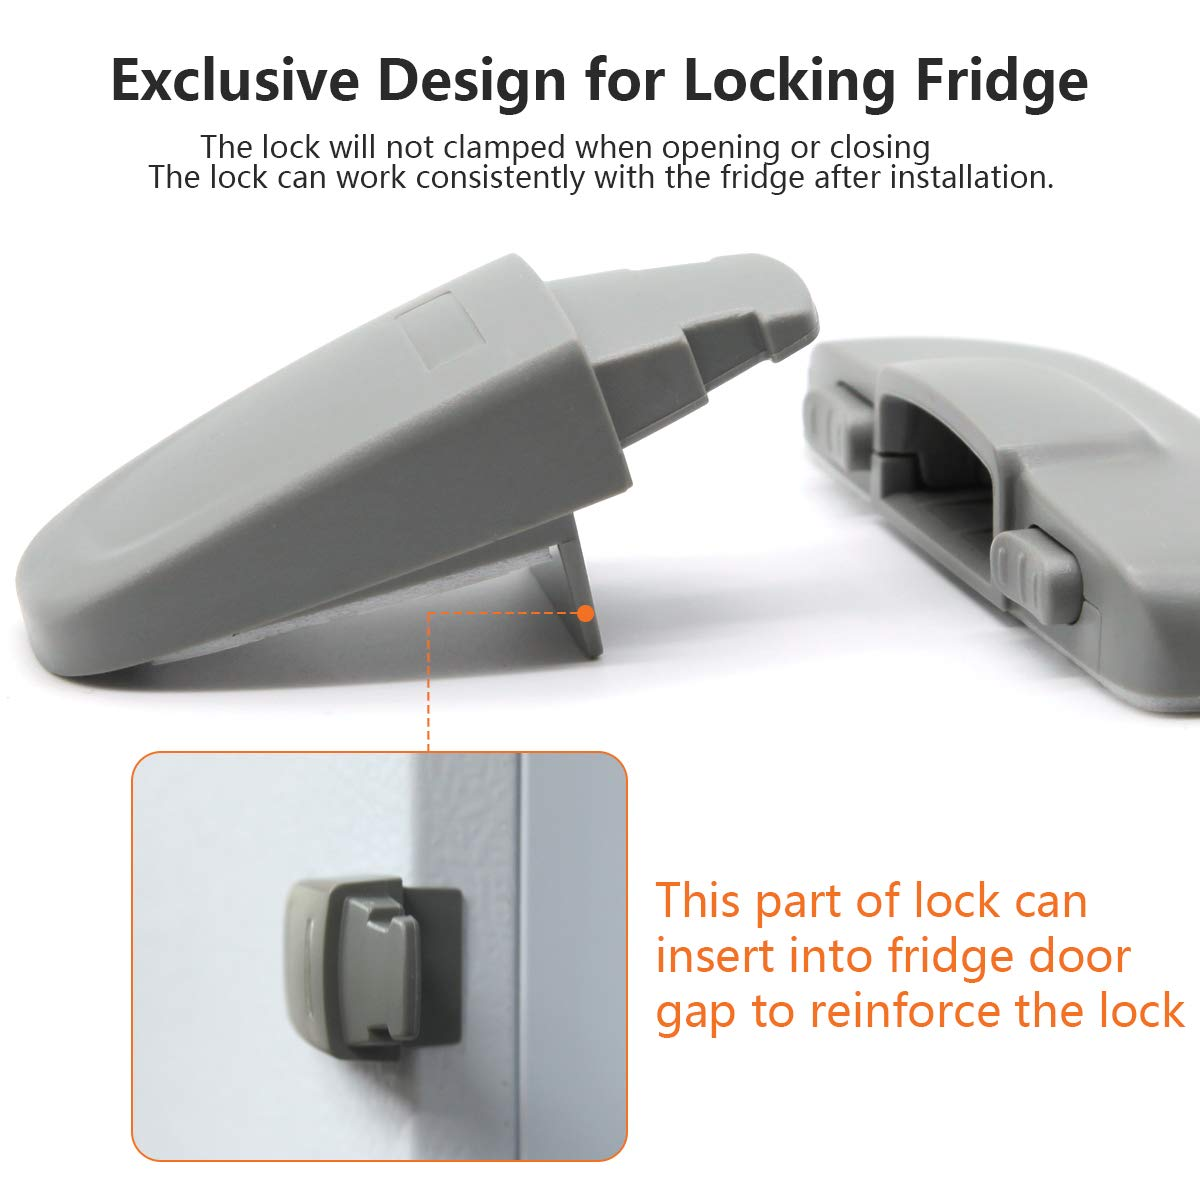 Latch Catch Toddler Kids Child Fridge Locks Baby Safety Child Lock 2 Pack, White Home Refrigerator Fridge Freezer Door Lock Easy to Install and Use 3M Adhesive no Tools Need or Drill